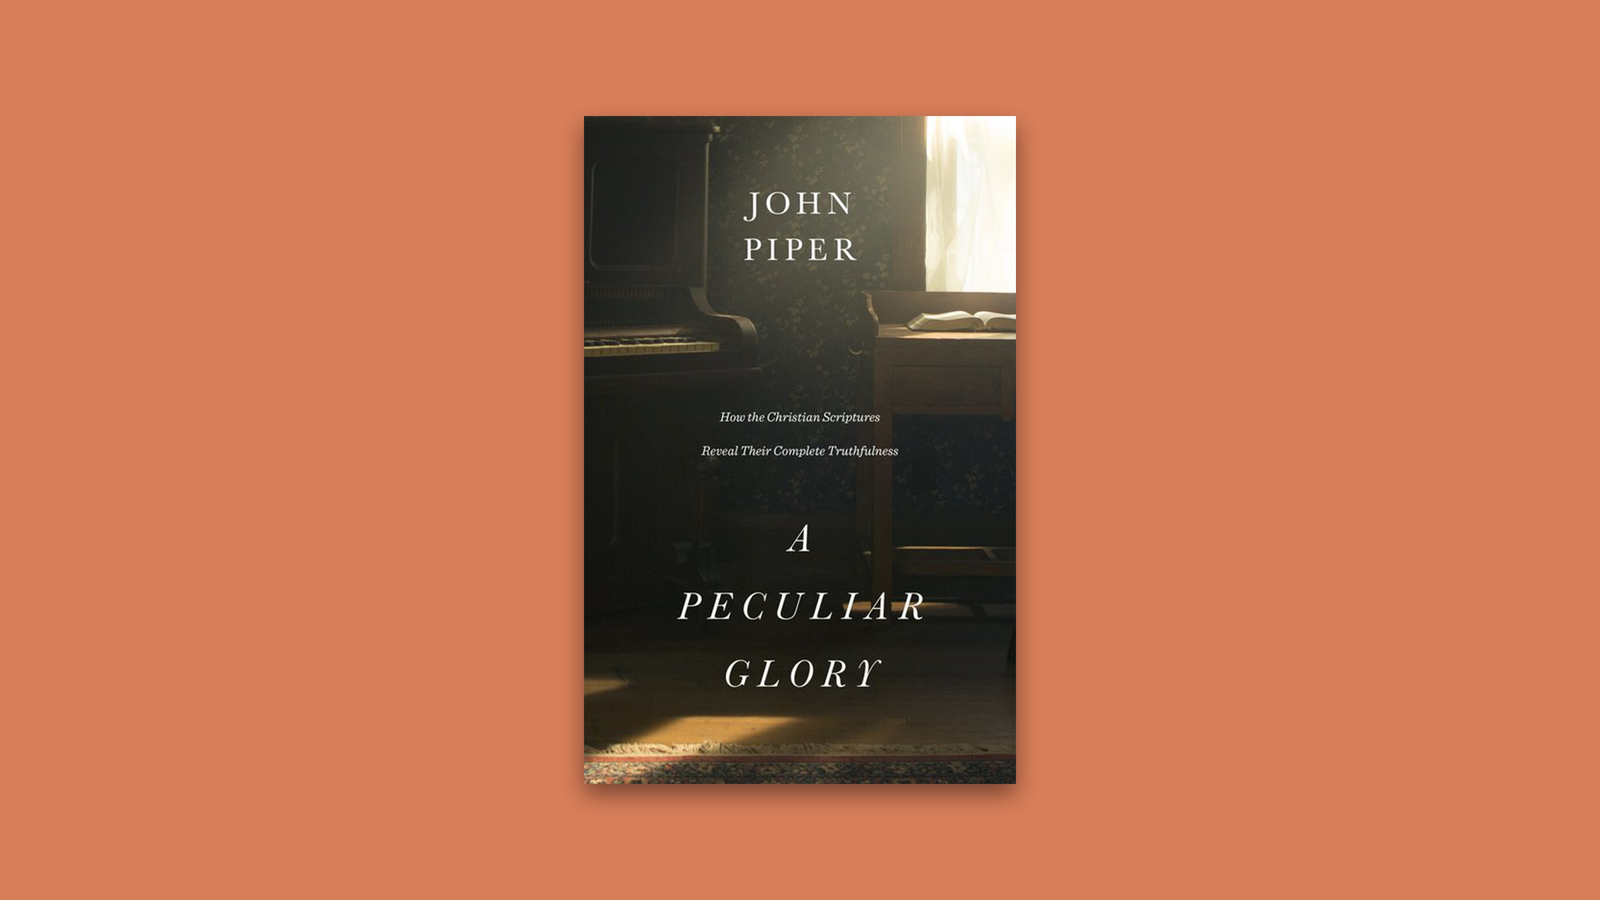 peculiar christian singles Married or single: for better or worse close to sanctify the single with the peculiar pains and pleasures of we christians don't make our choices that.